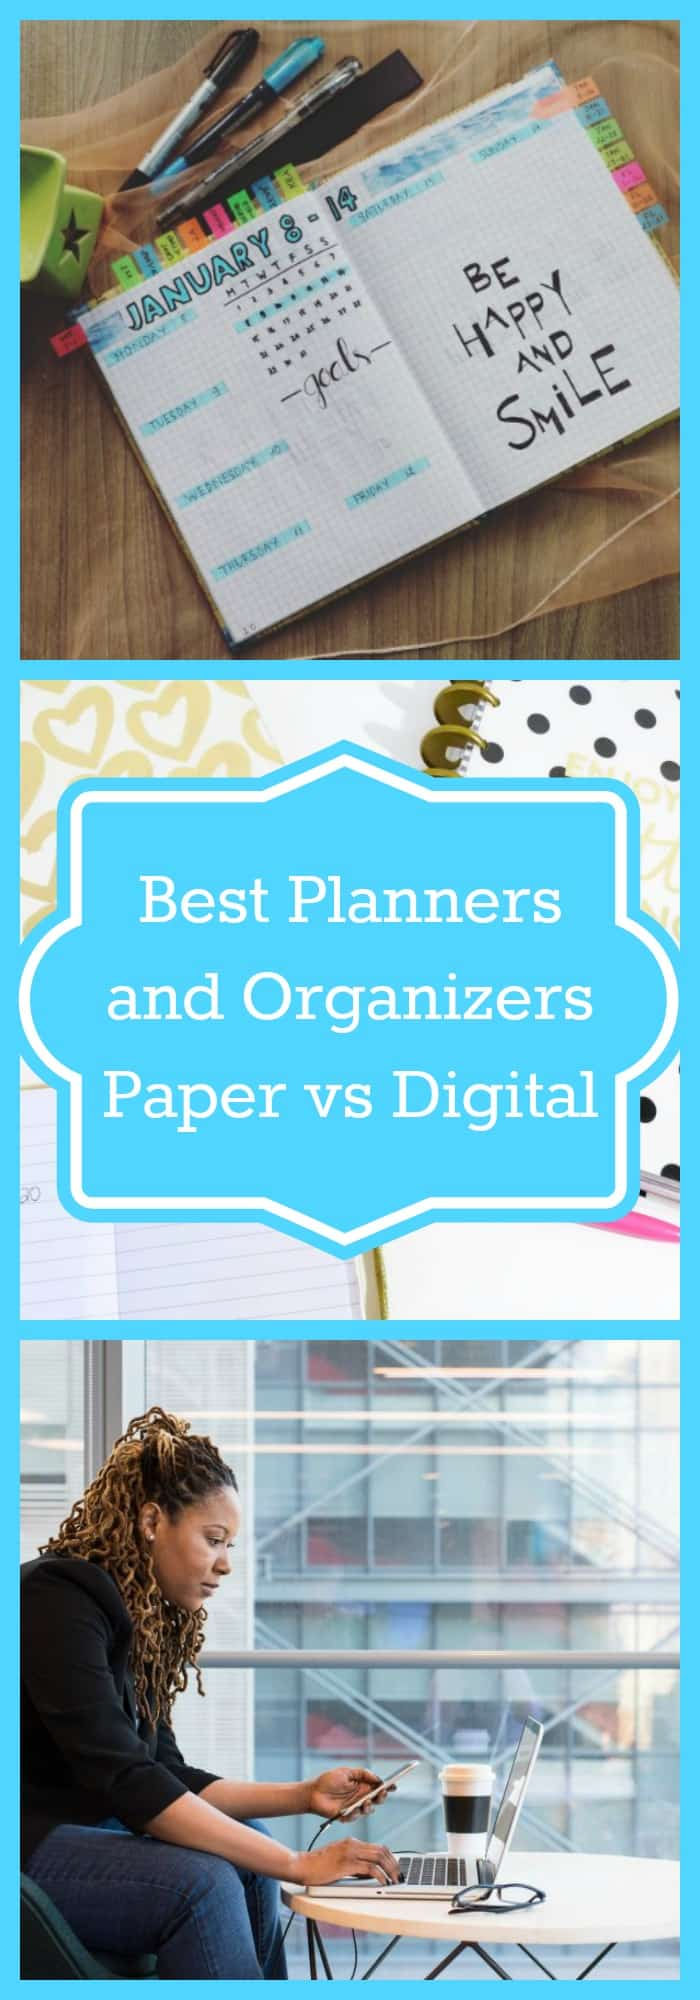 photograph regarding Digital Planners and Organizers identified as Suitable Planners and Organizers- Paper vs Electronic - The